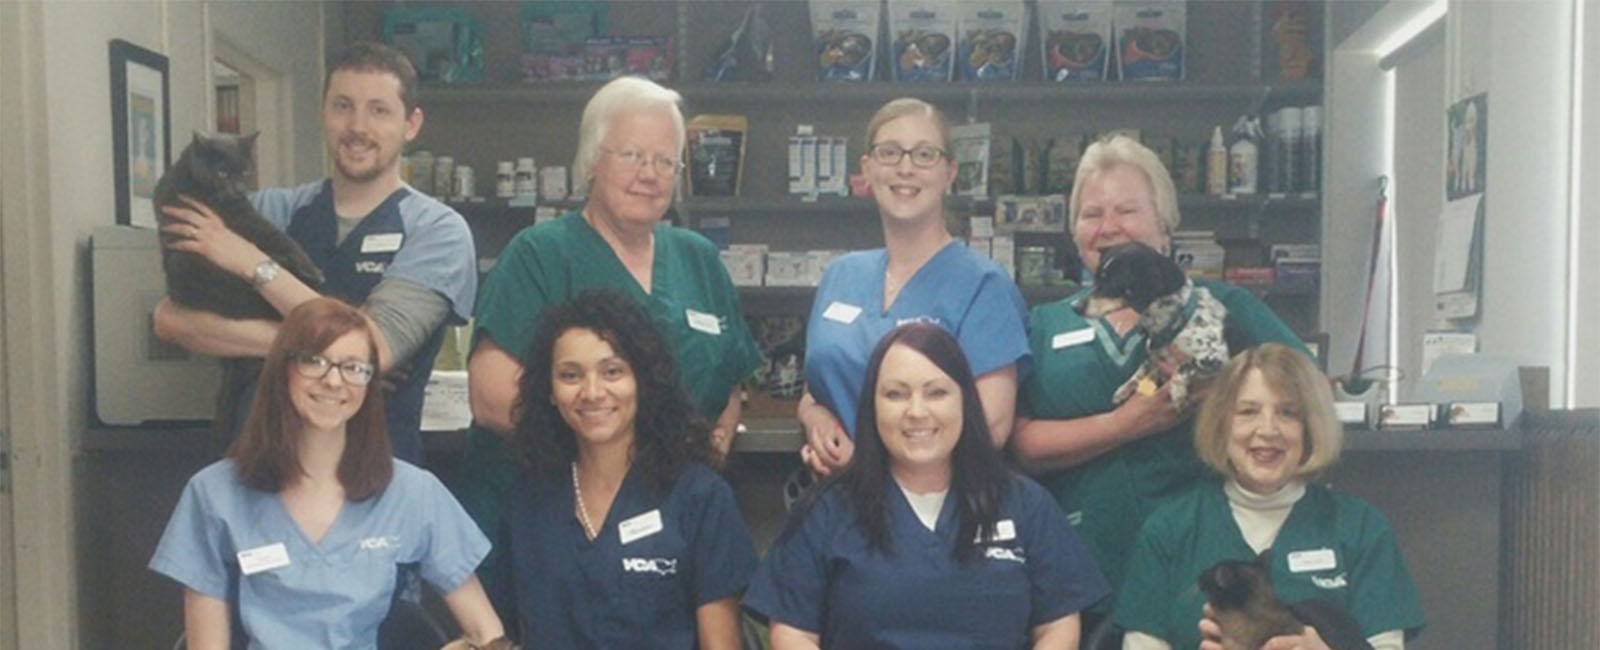 Homepage Team Picture of VCA Shaker Road Animal Hospital